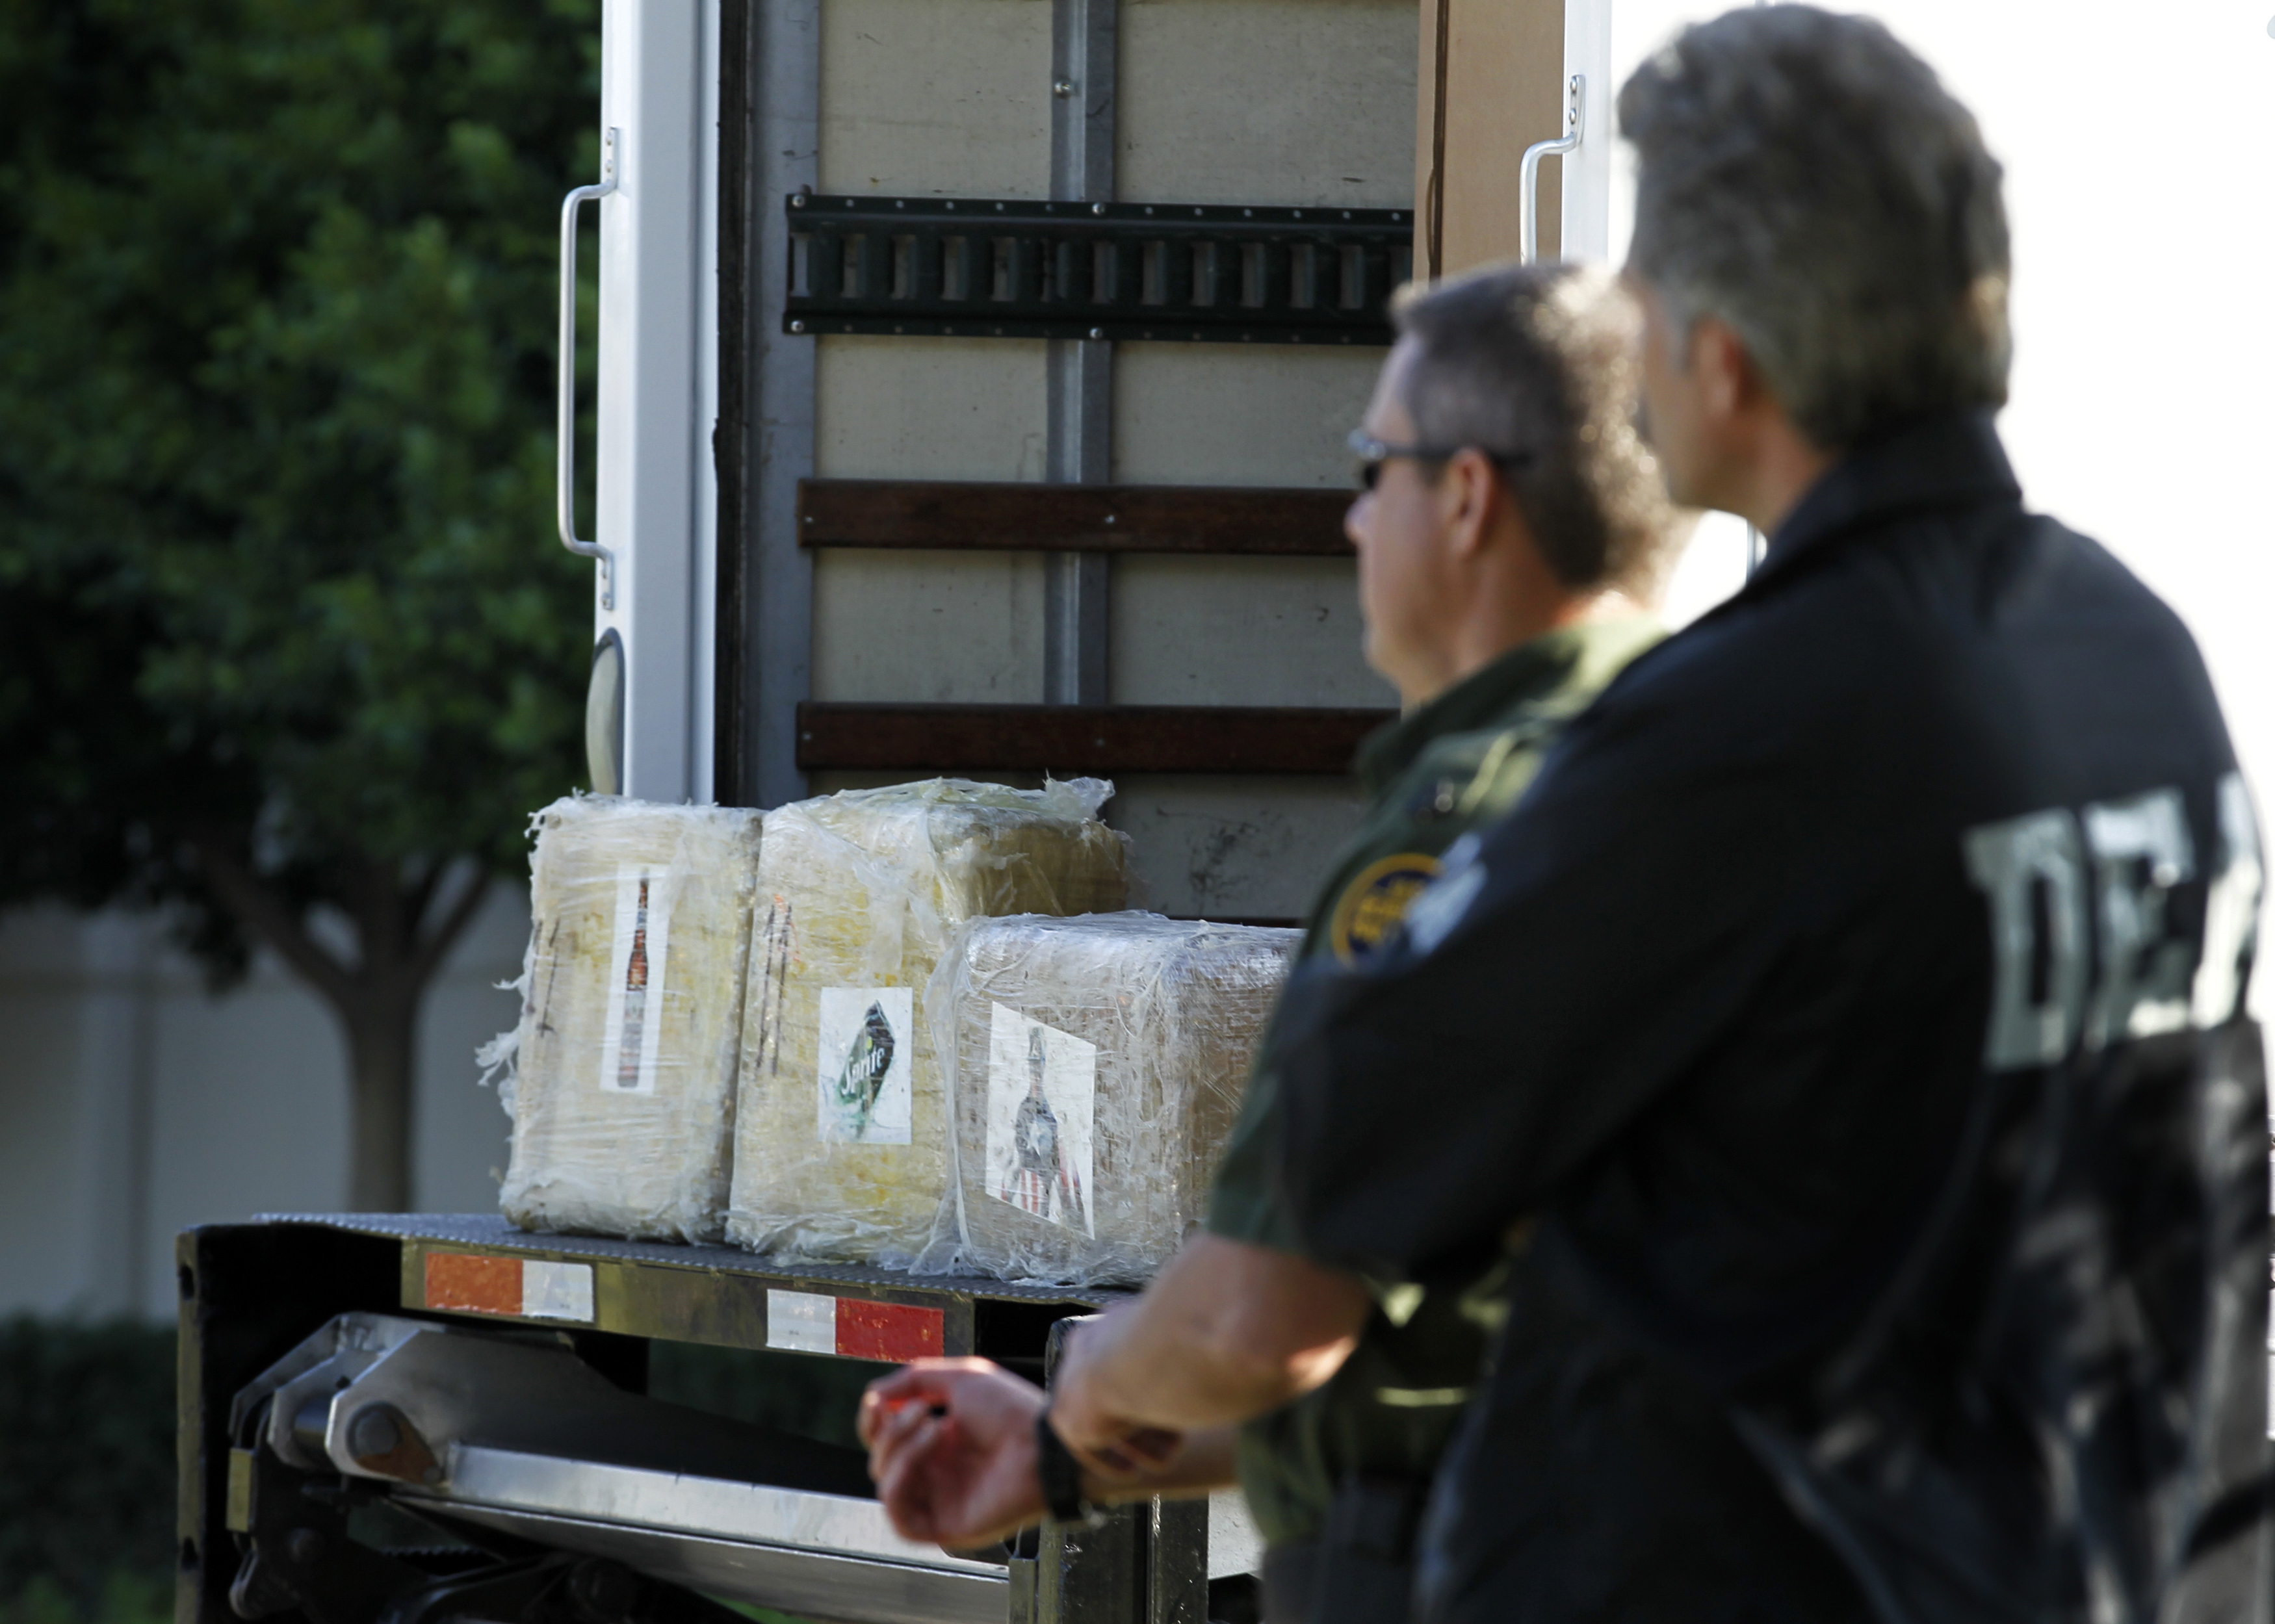 A Drug Enforcement Administration (DEA) agent and a border patrol officer stand next to marijuana seized in Otay Mesa, California. REUTERS/Mike Blake